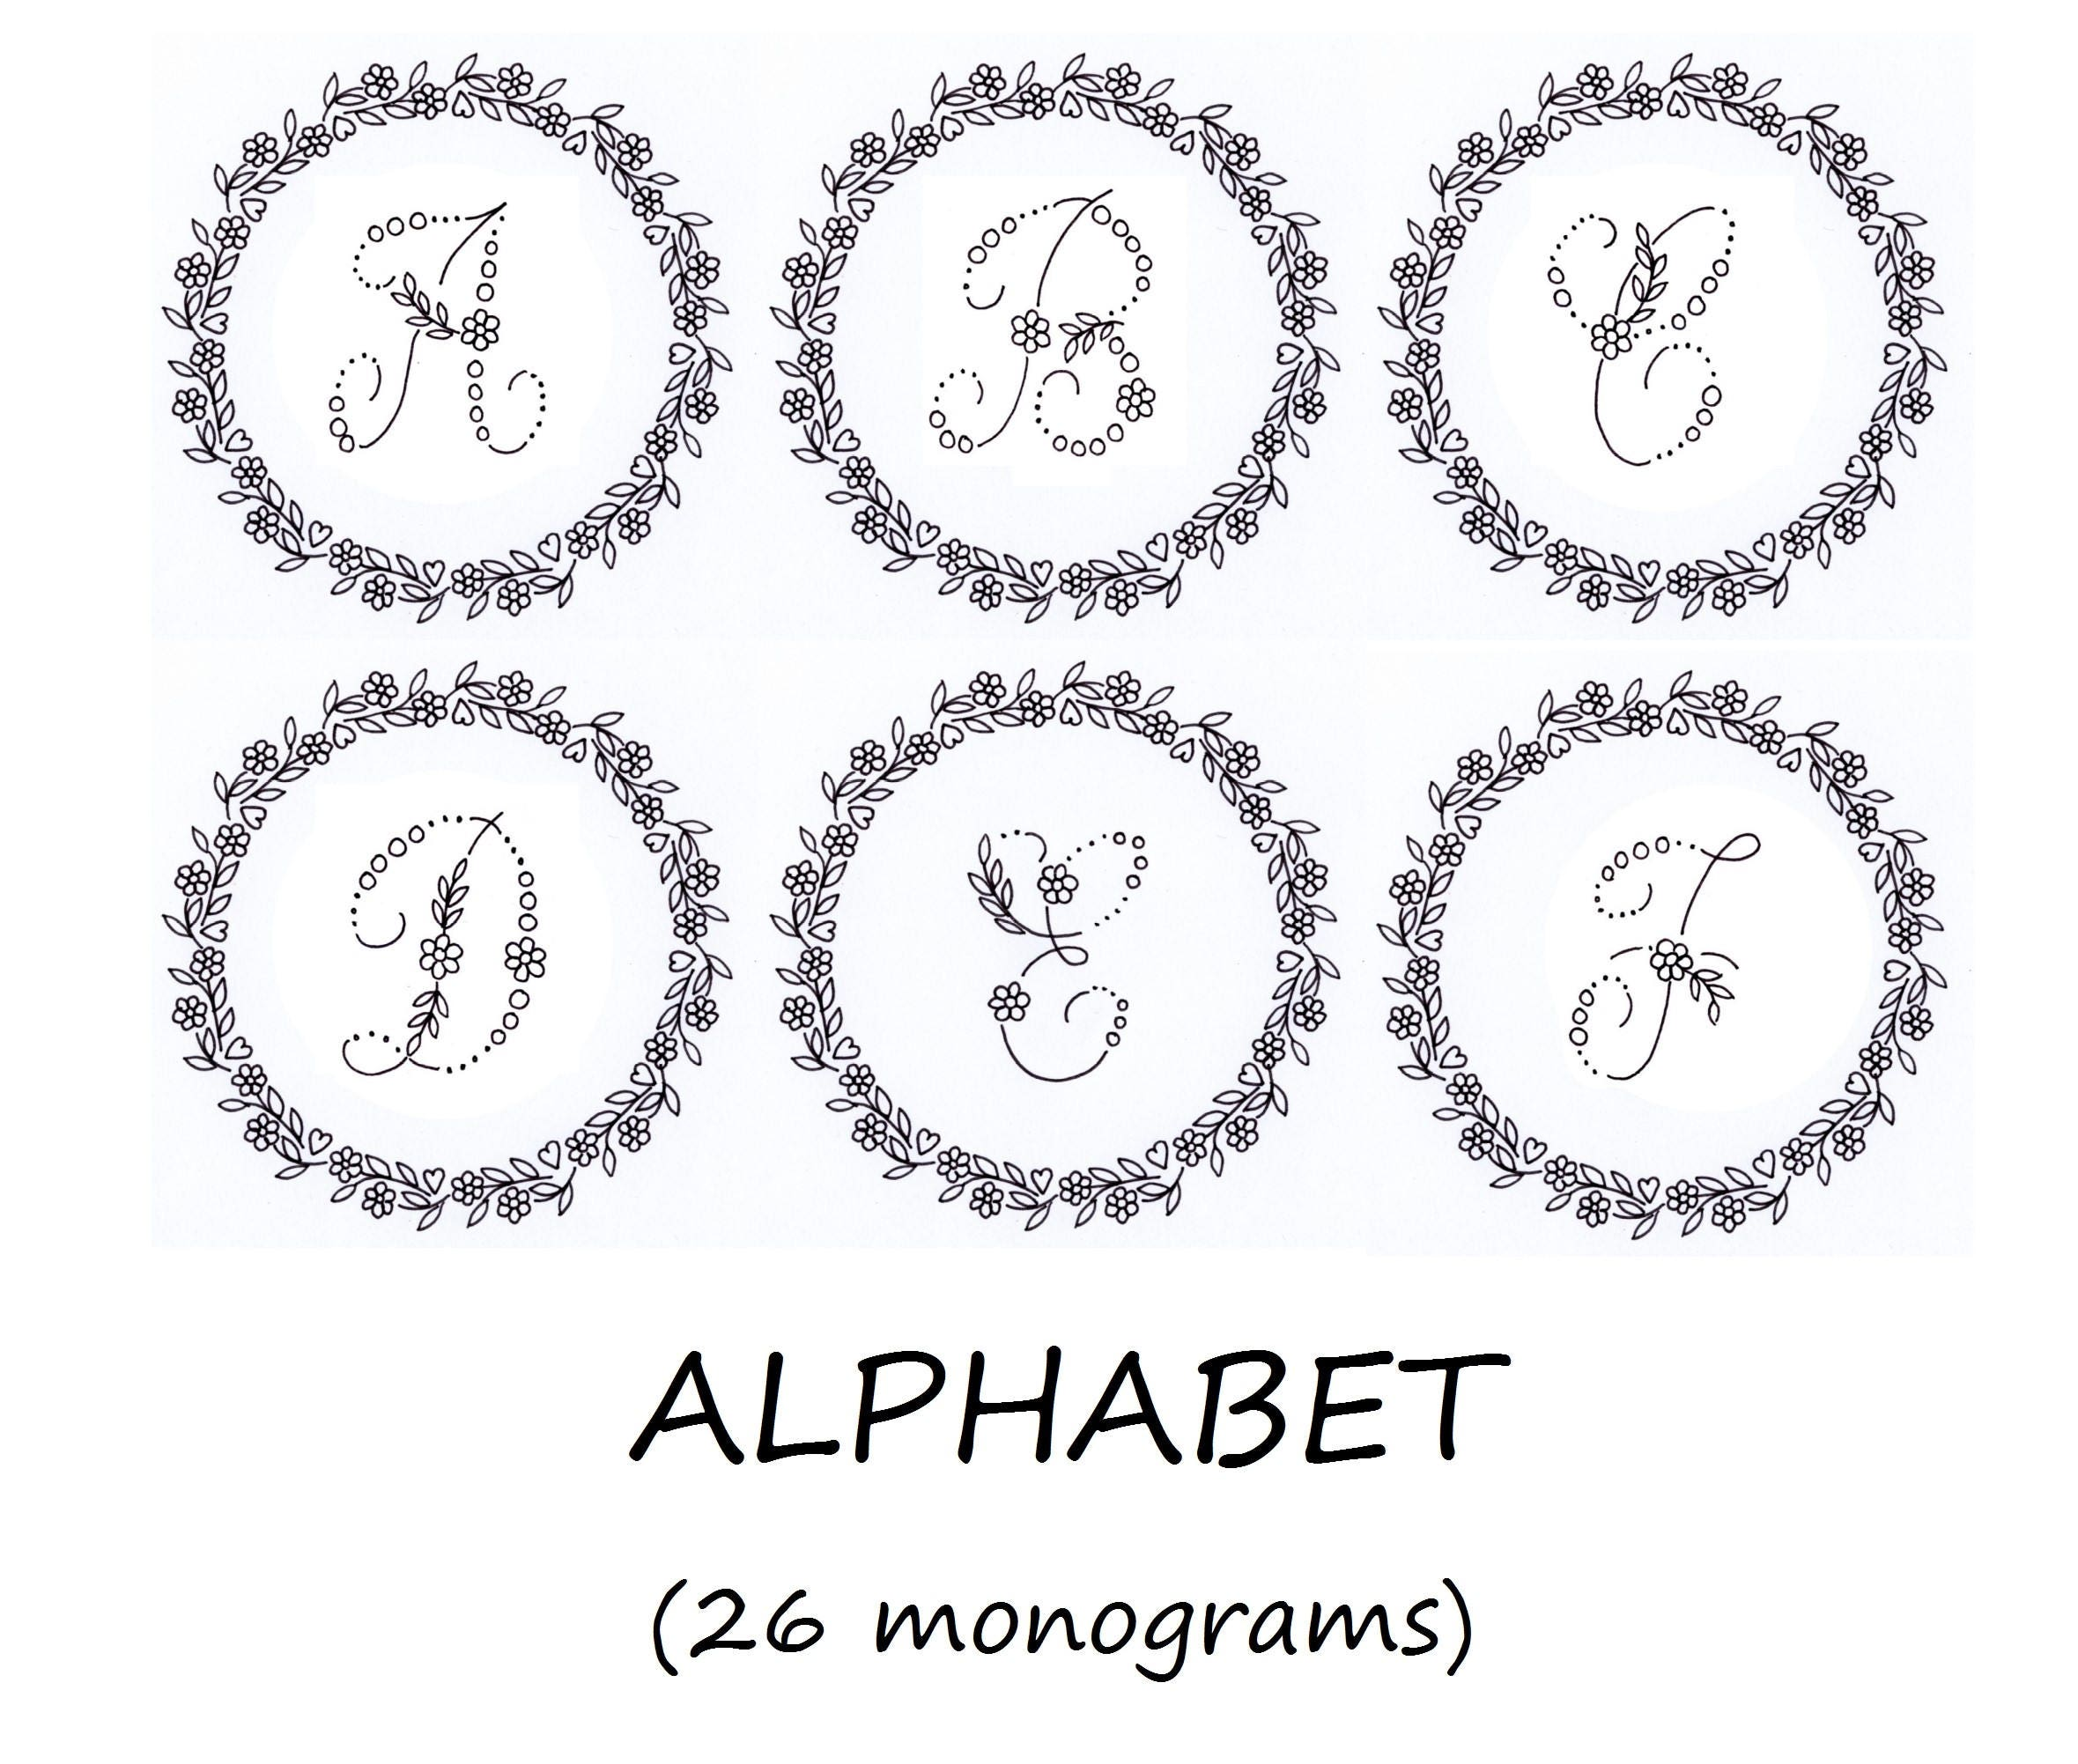 Hand Embroidery PDF: 26 monograms alphabet with Floral